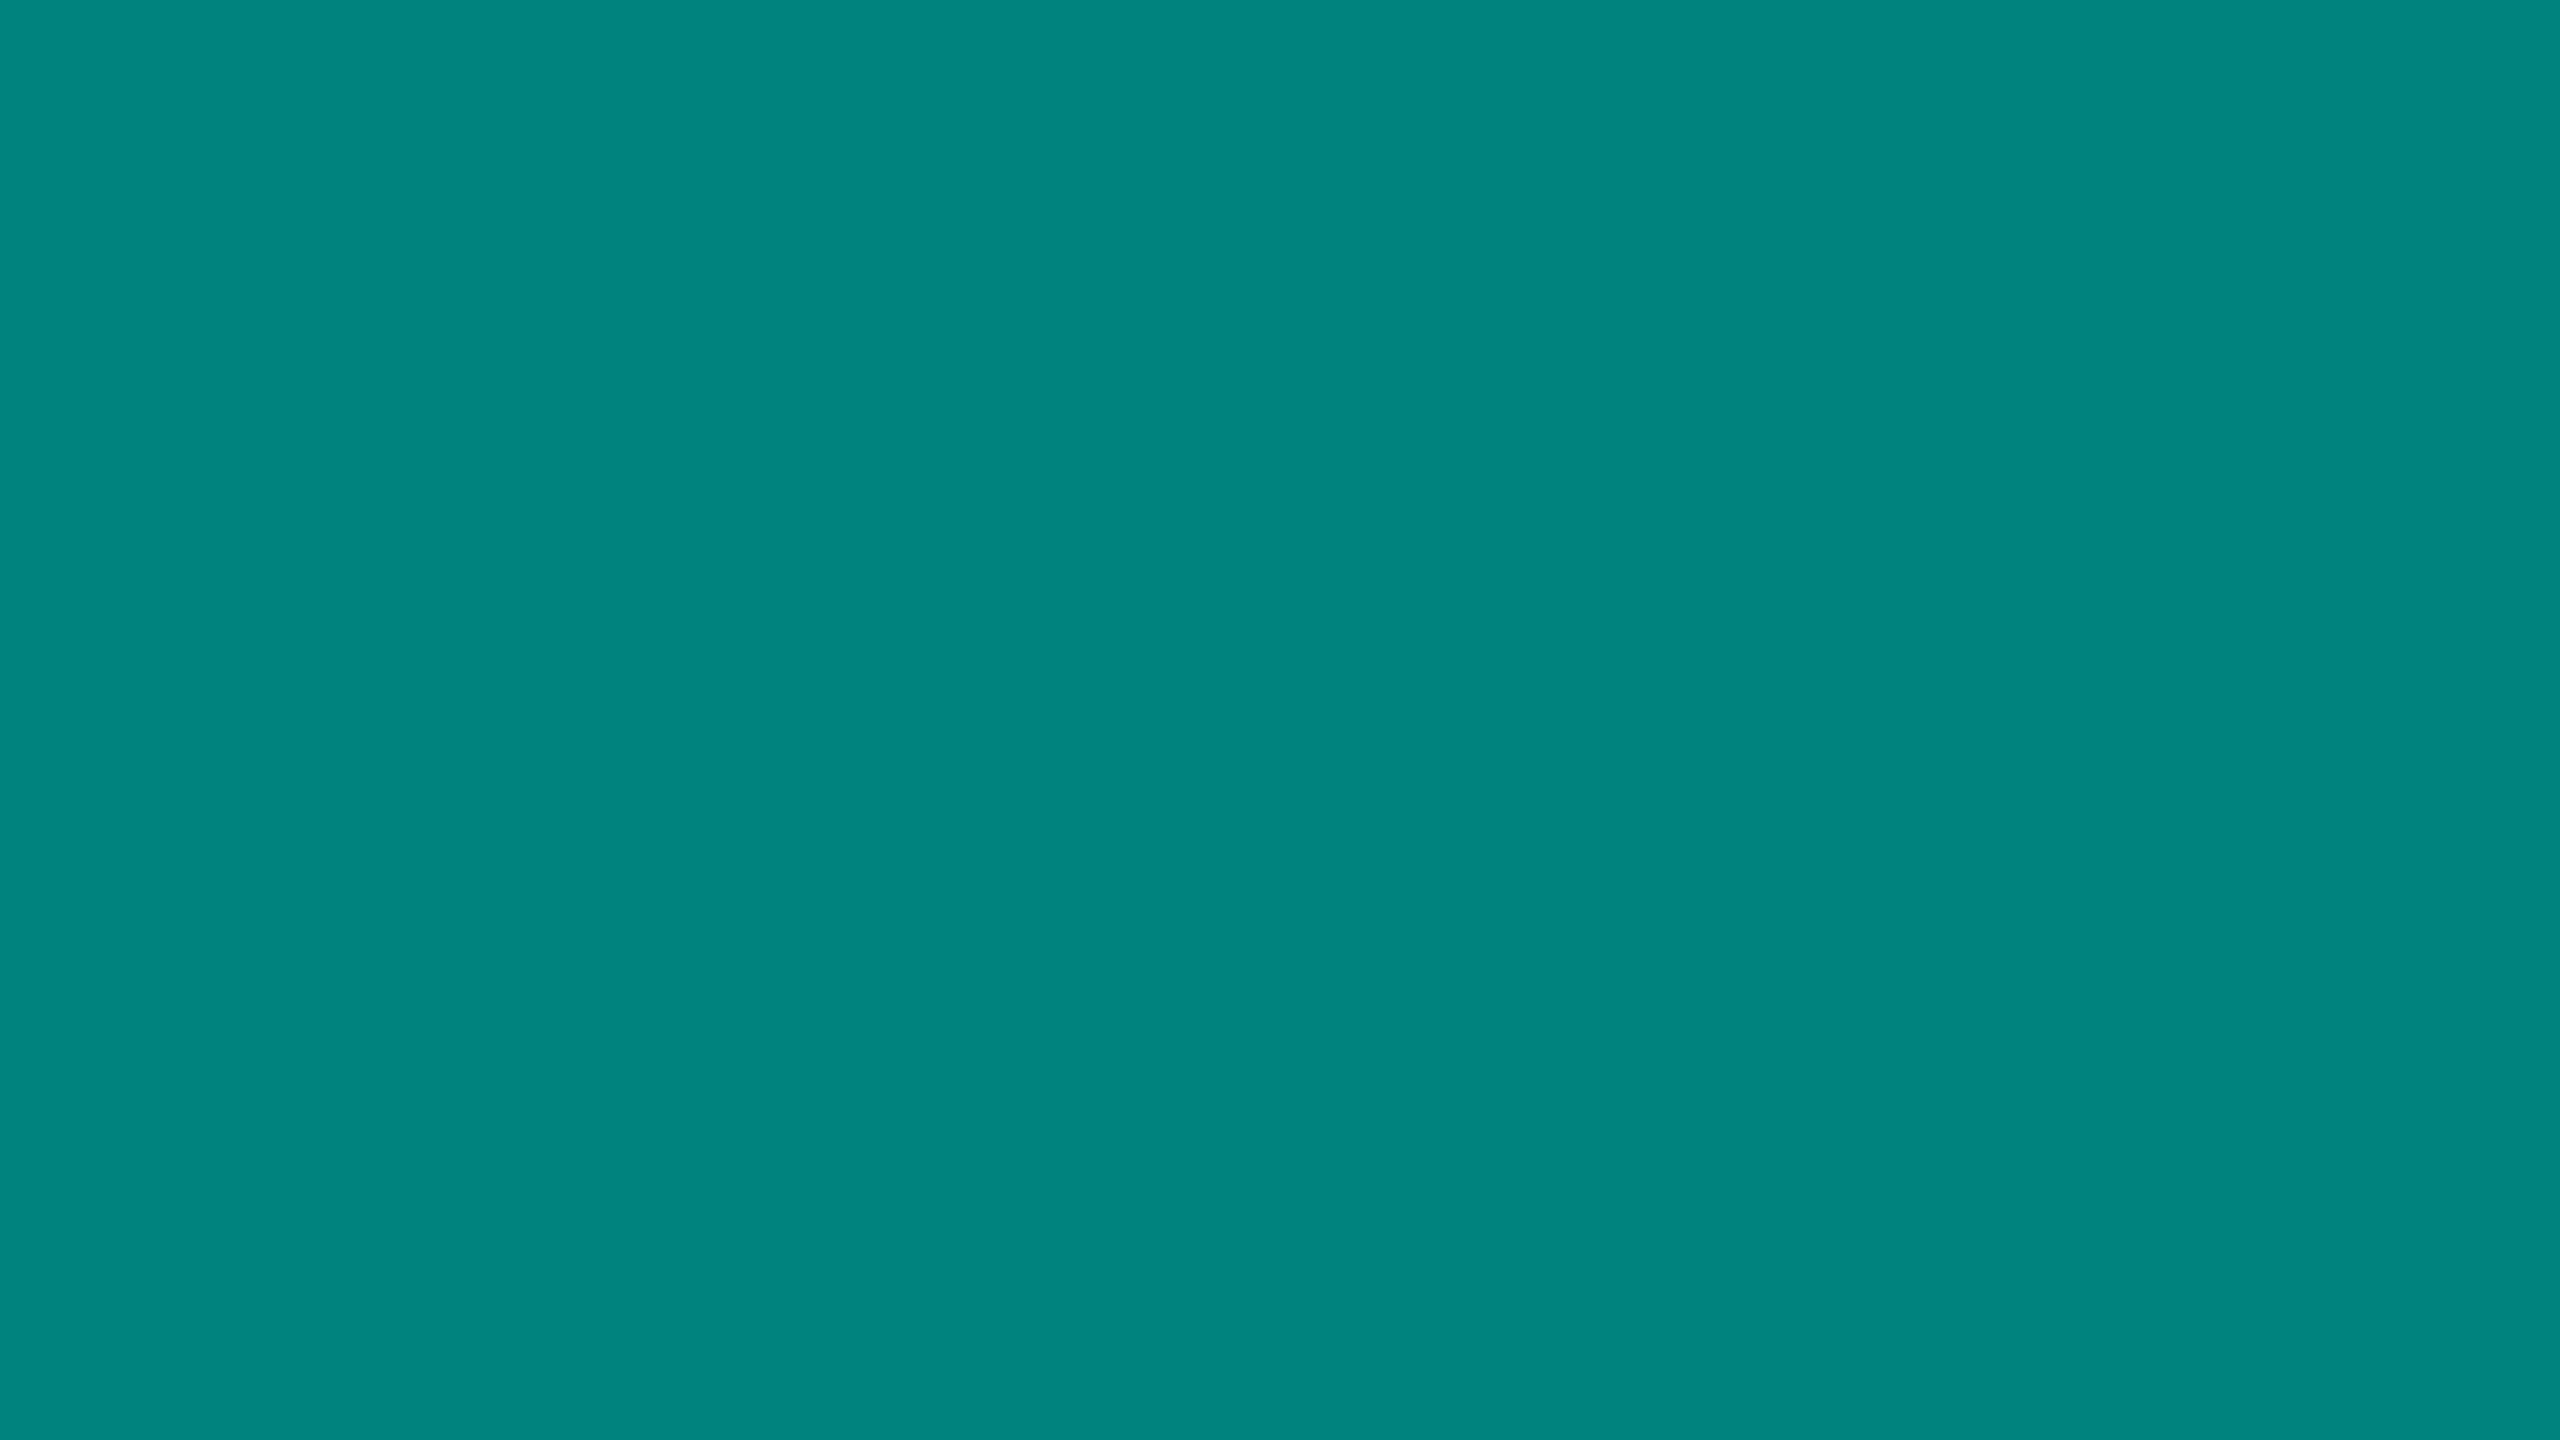 2560x1440 Teal Green Solid Color Background